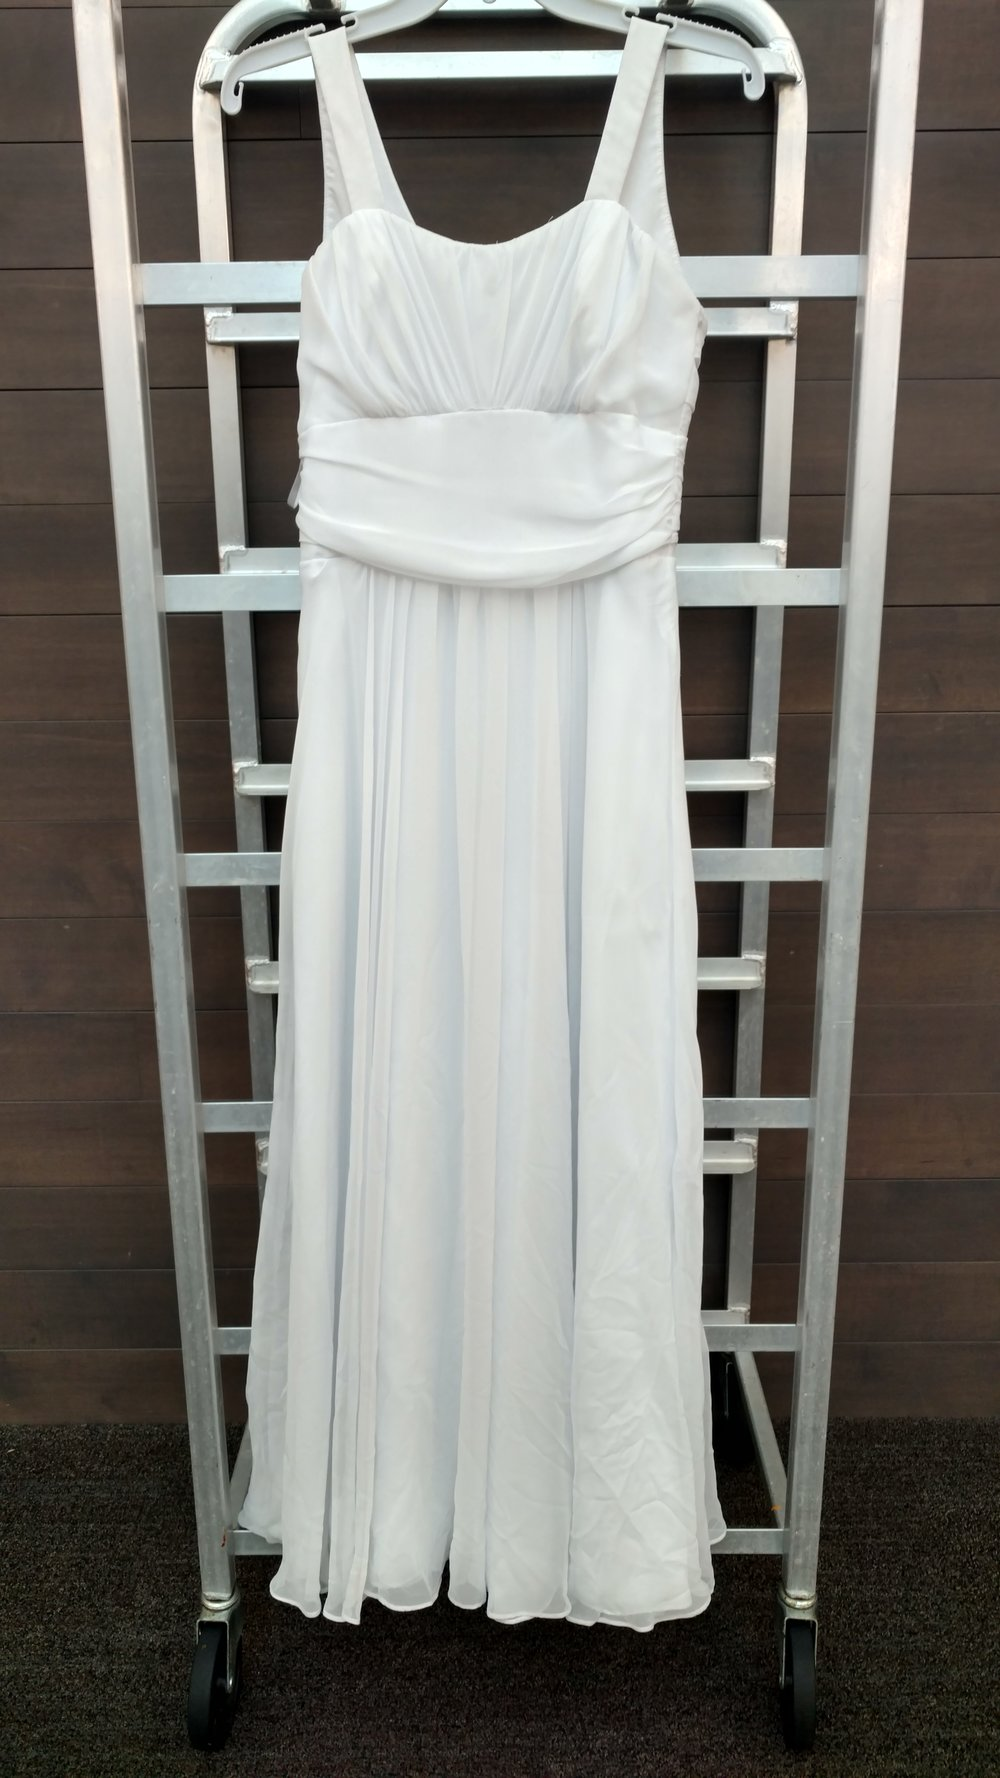 Dress 3 - Jim Hjelm, Occaisions - White, Size 14, Waist 28 inches, Length 49 inches